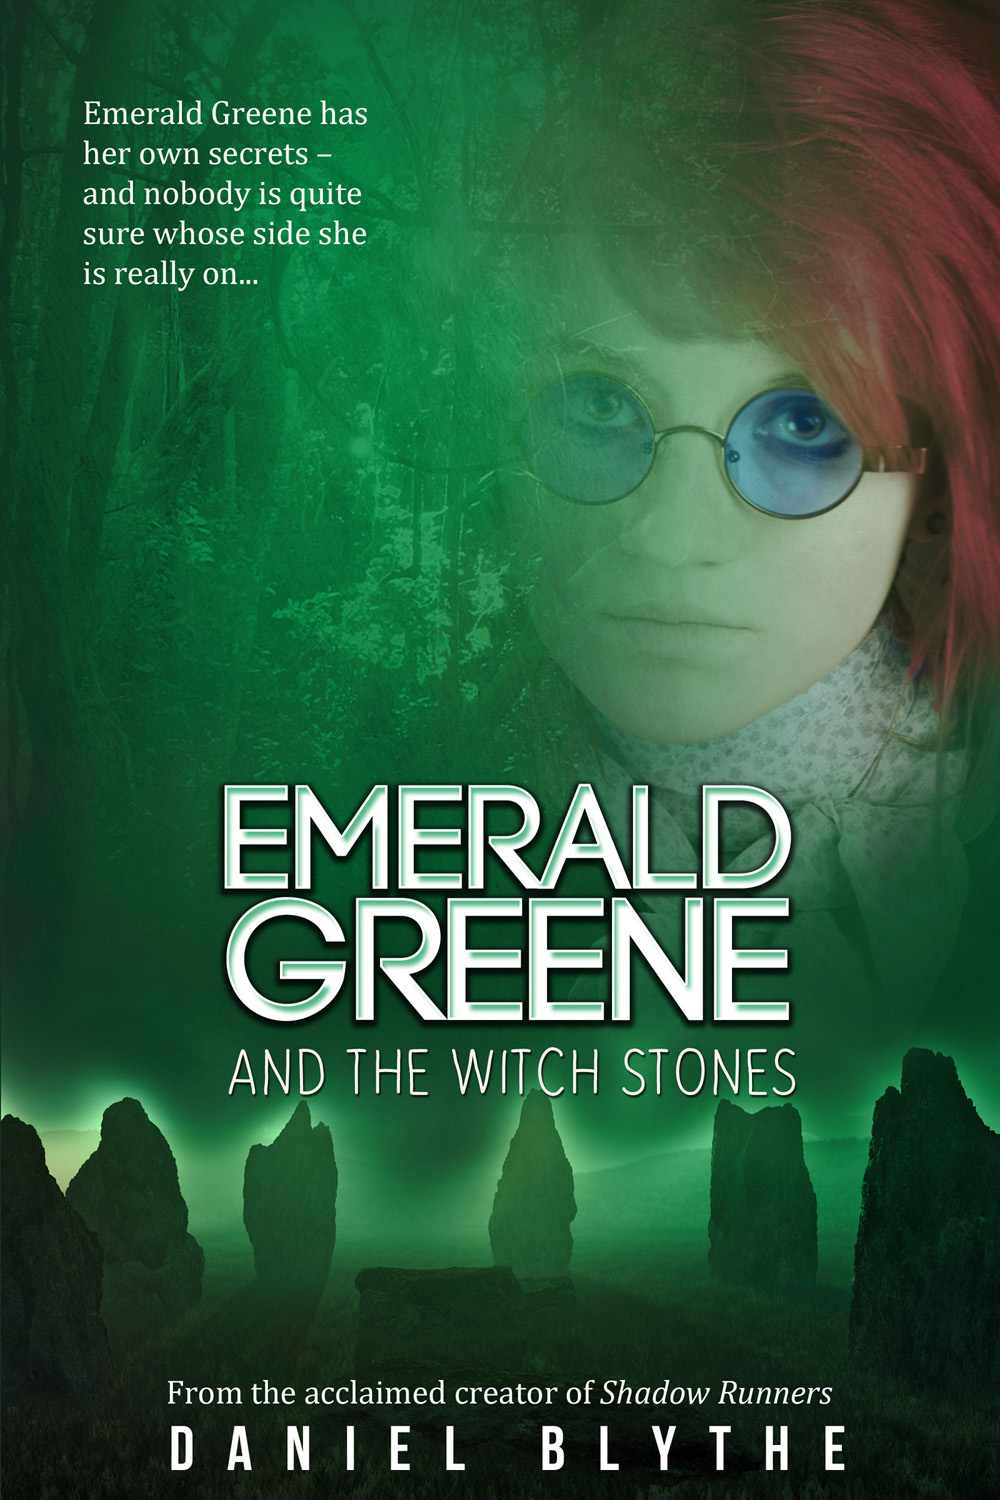 Emerald Greene and the Witch Stones